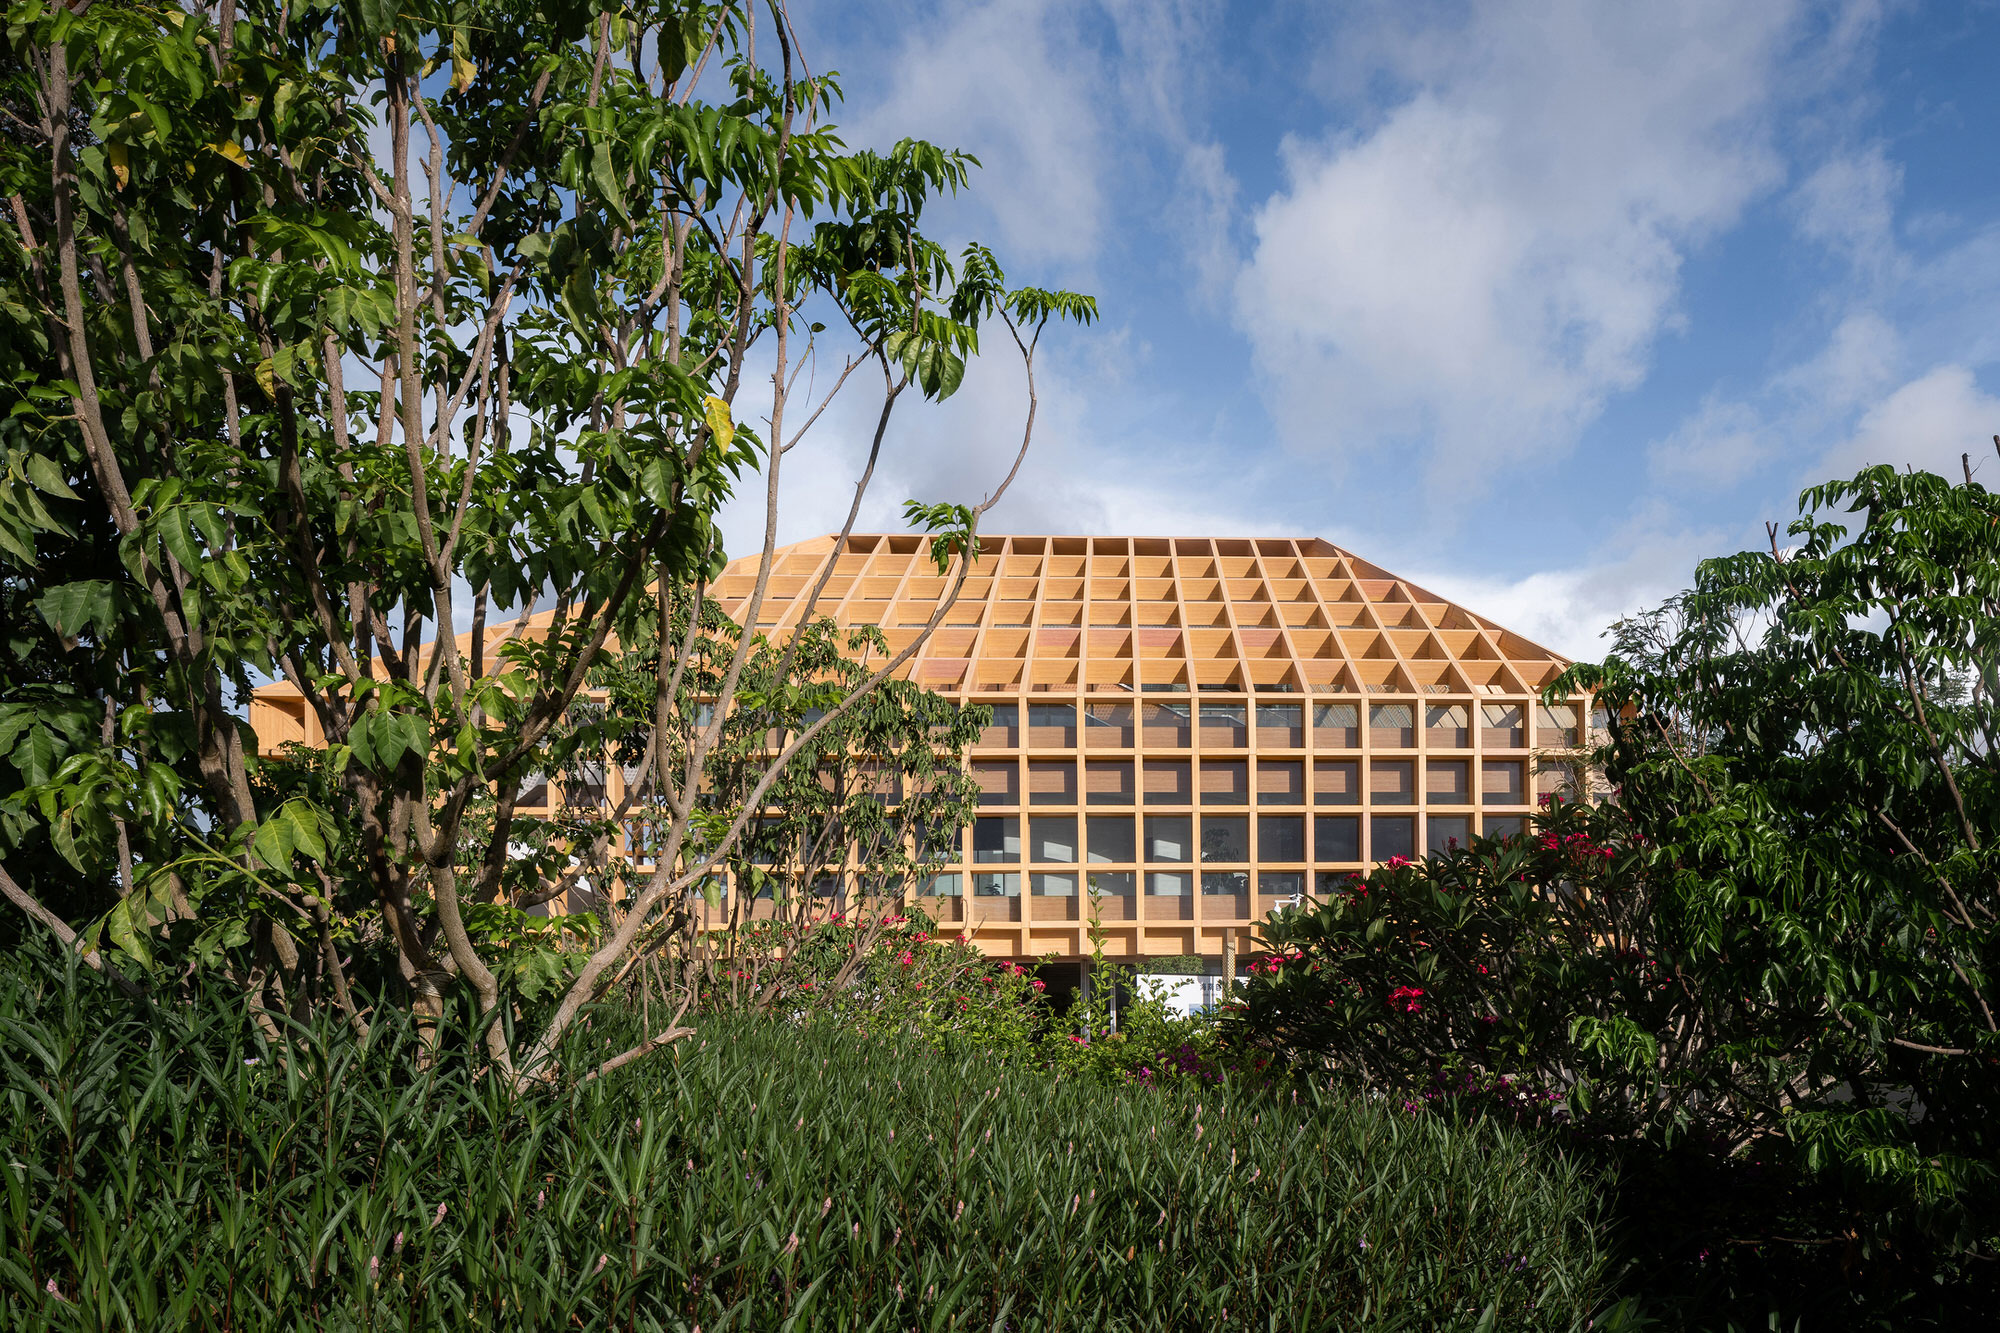 Technology Meets Agriculture at Sanya Farm Lab by CLOU architects.